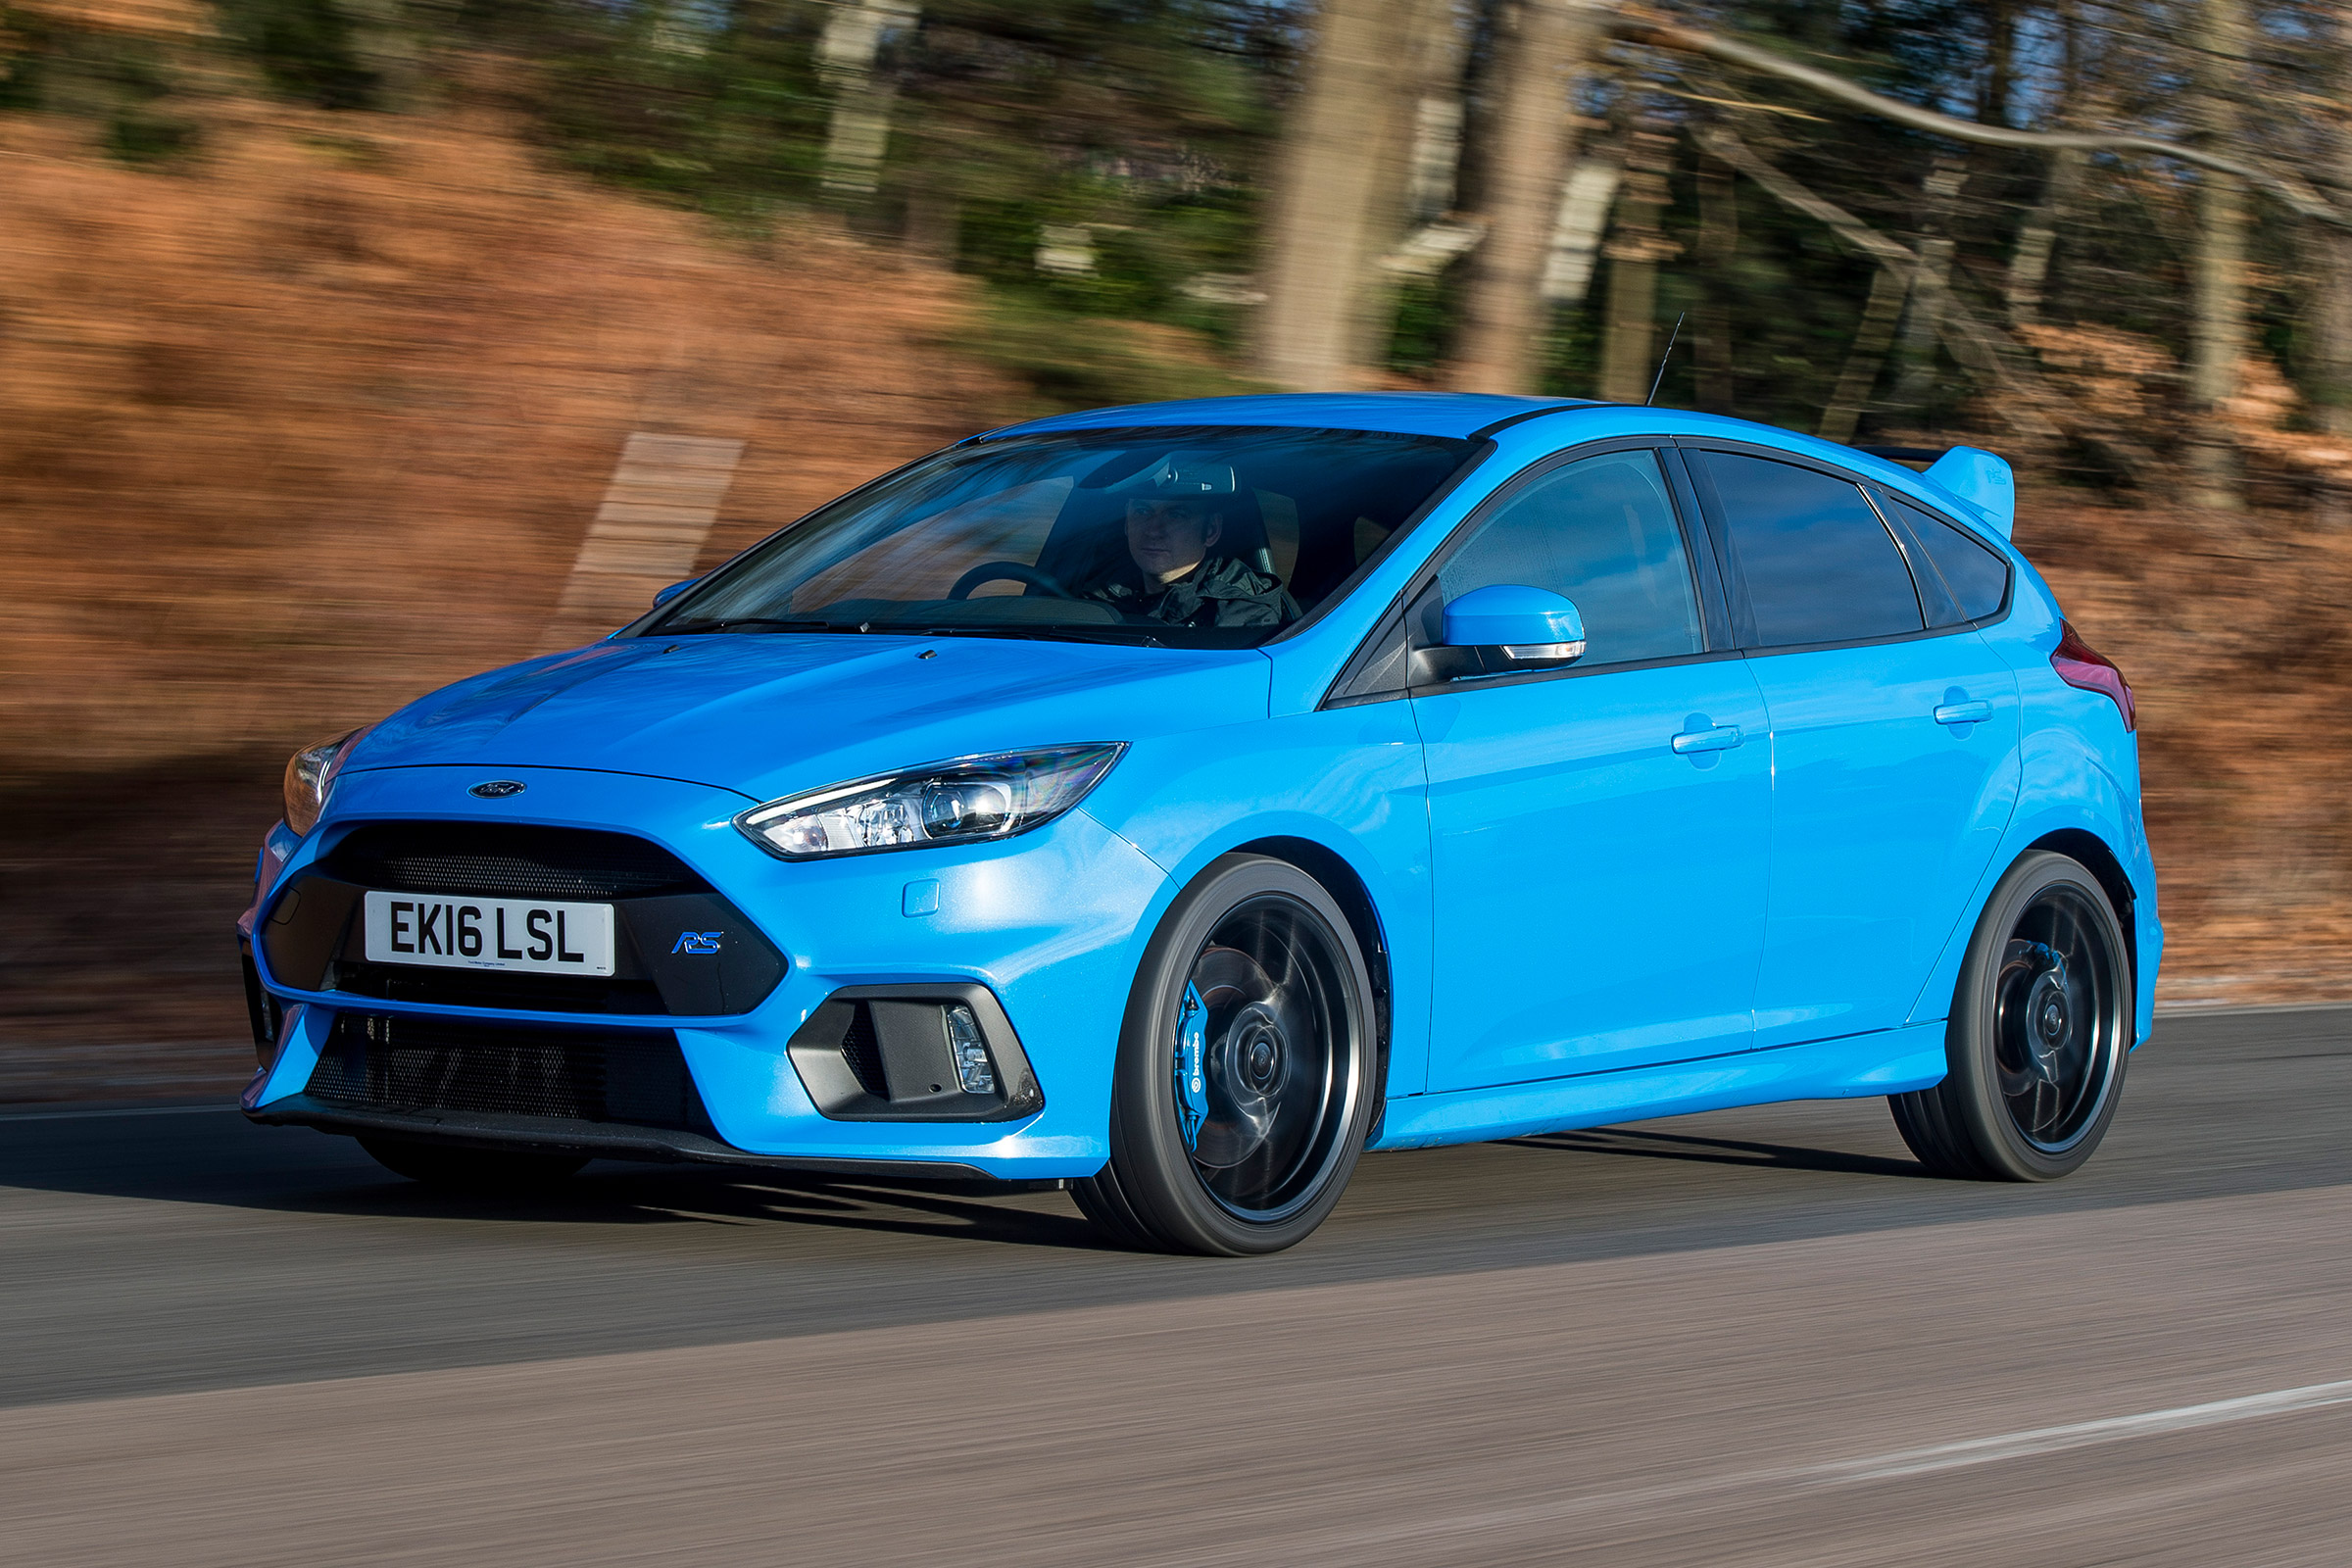 2017 Ford Focus RS (View 23 of 23)